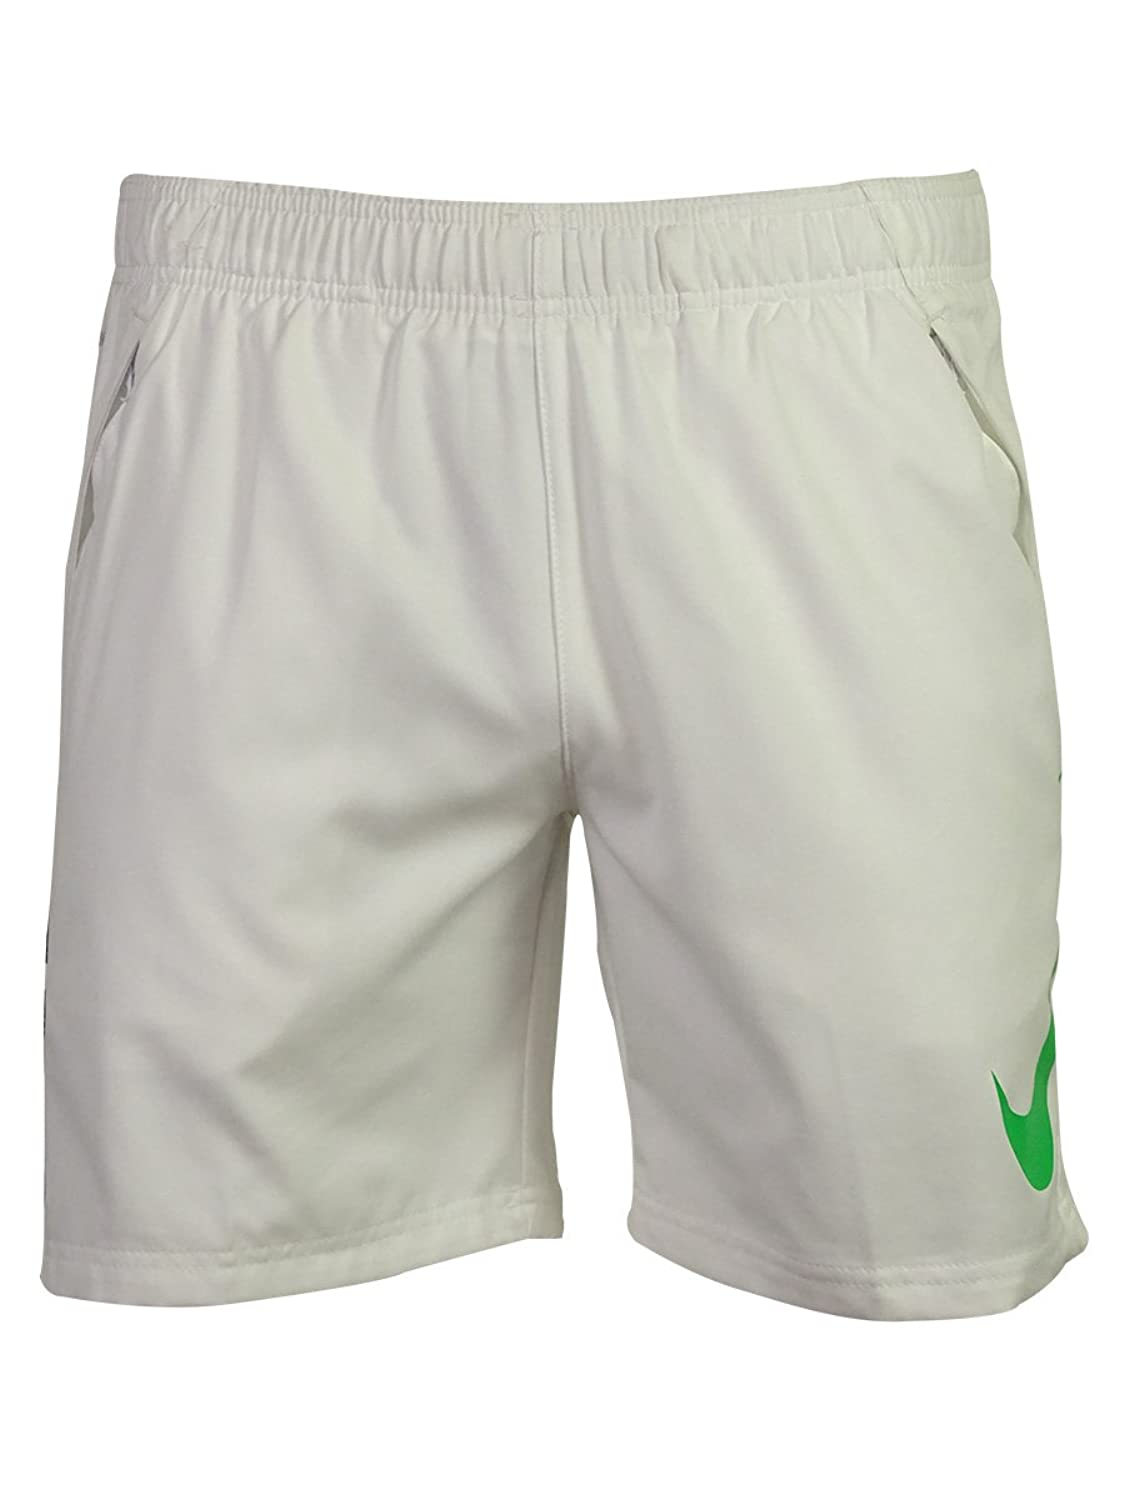 nike dri fit soccer shorts white